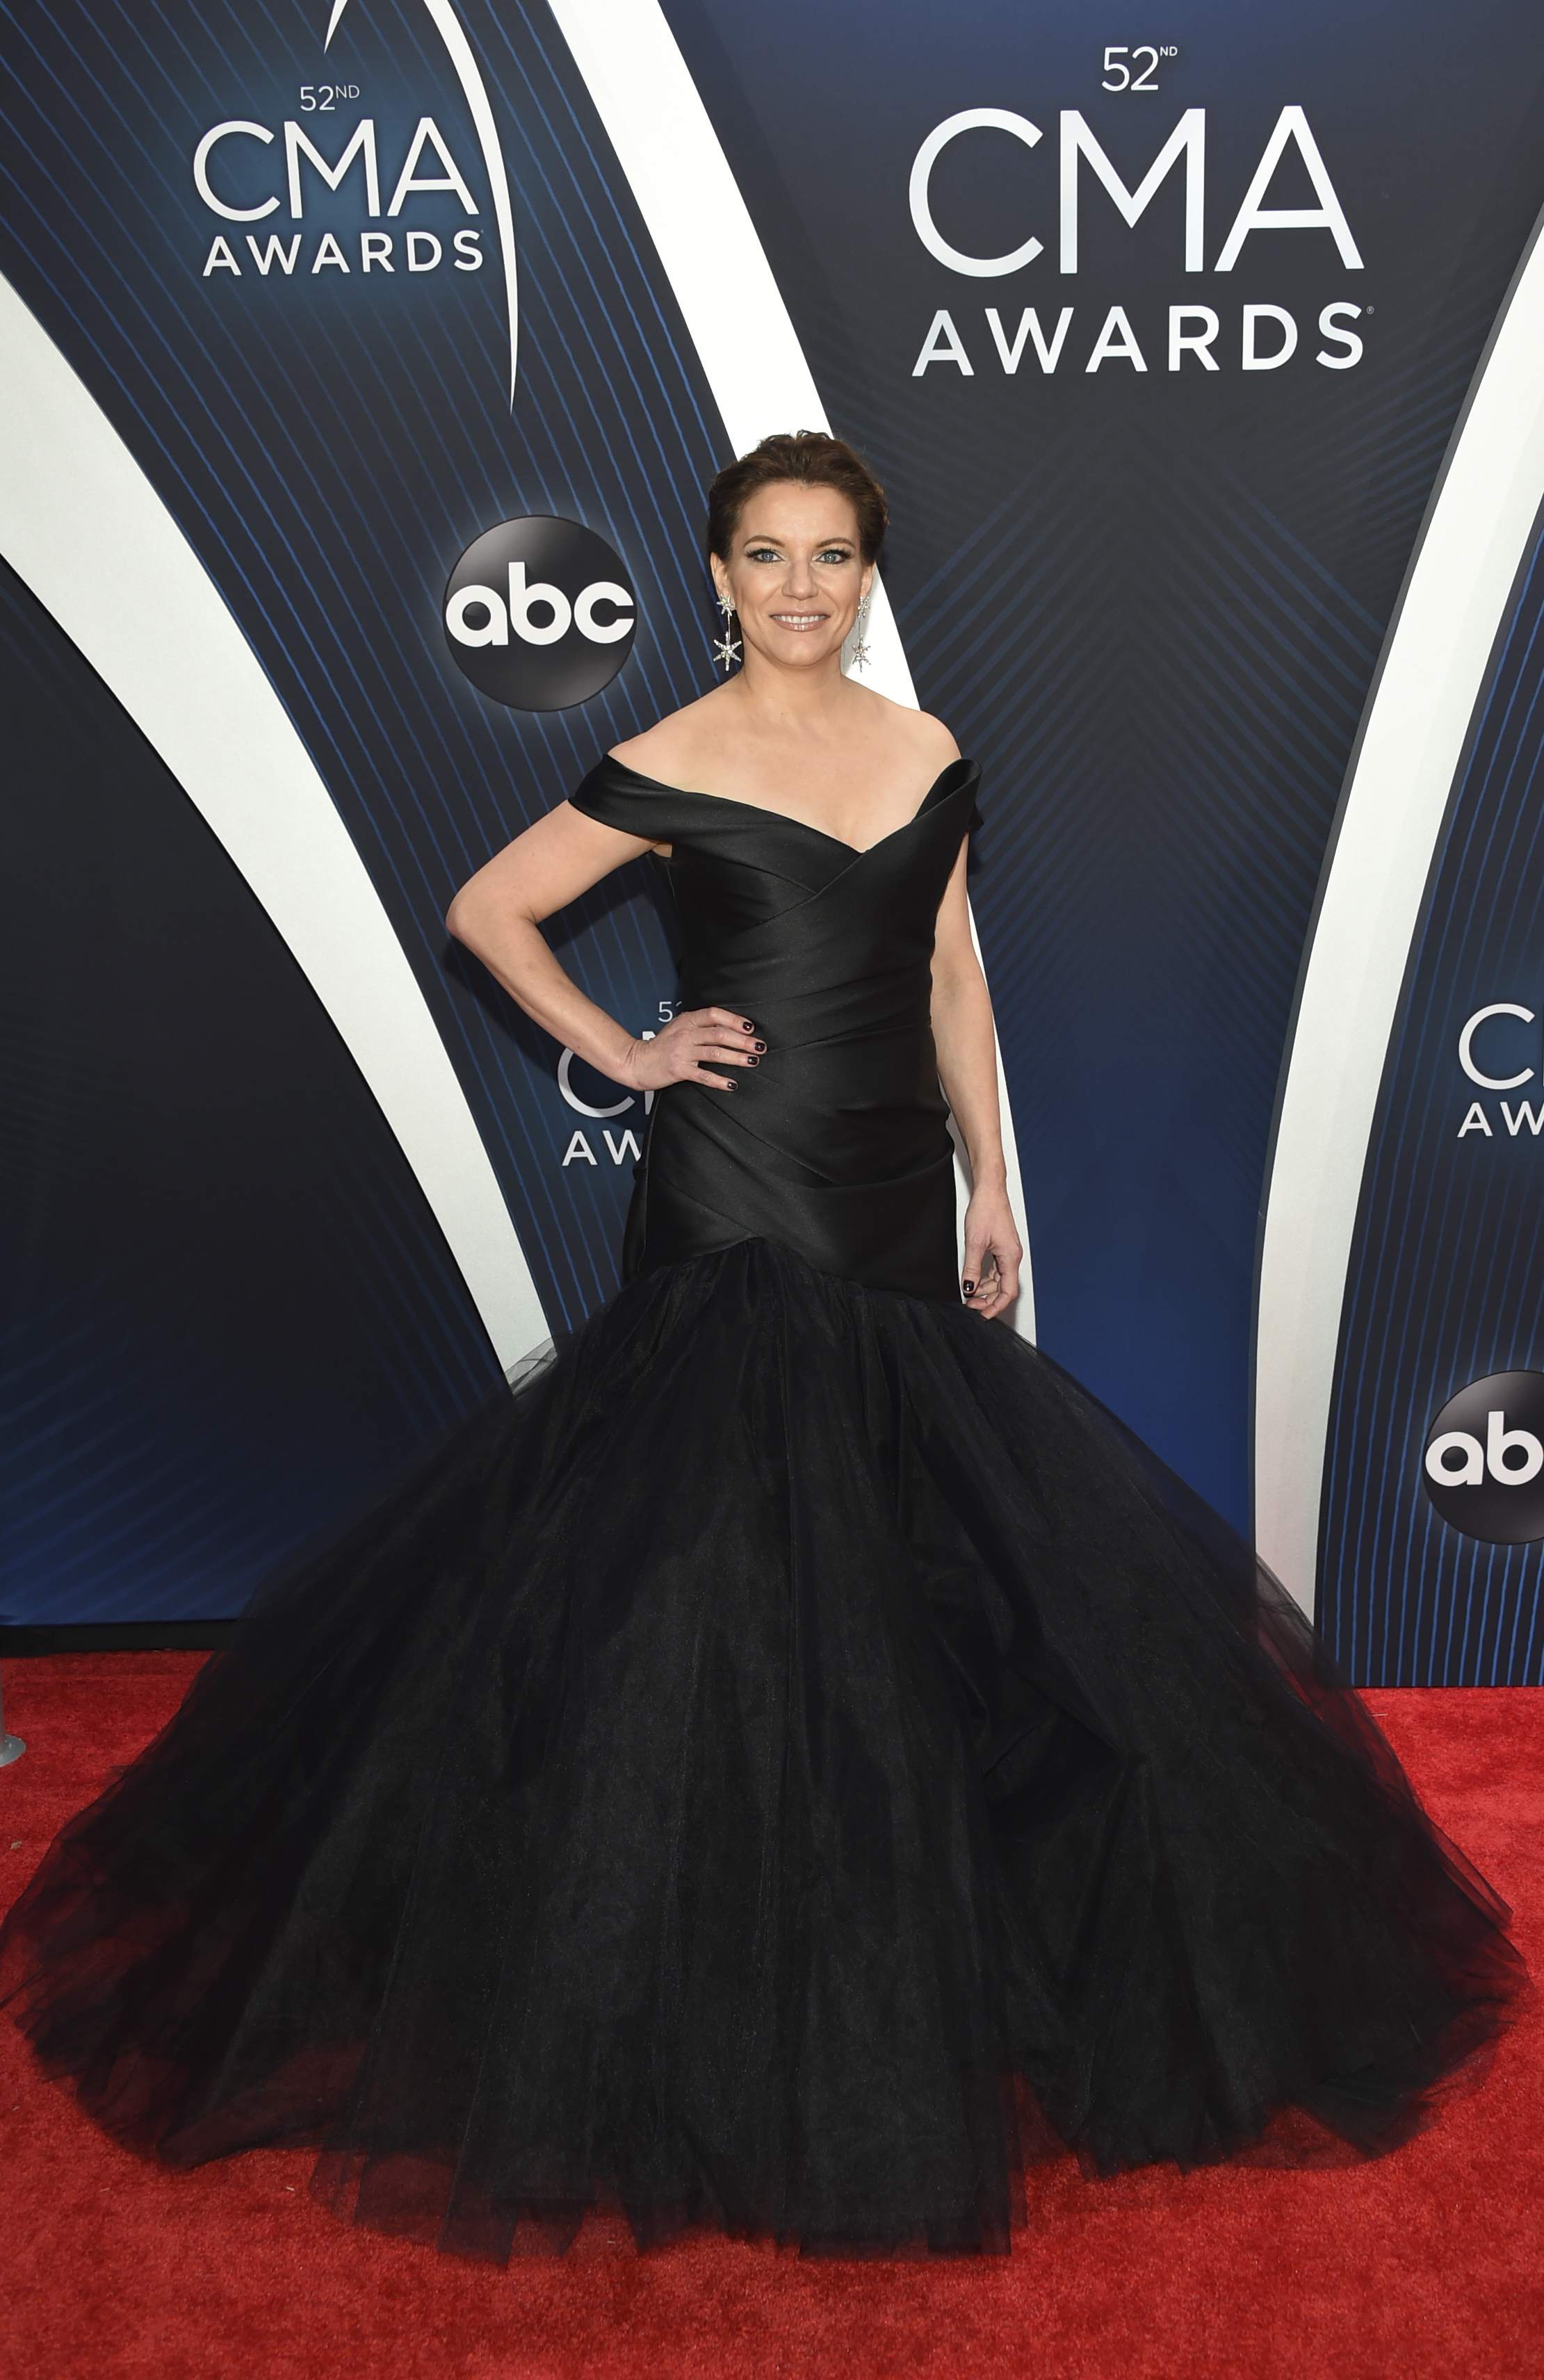 "<div class=""meta image-caption""><div class=""origin-logo origin-image ap""><span>AP</span></div><span class=""caption-text"">Martina McBride arrives at the 52nd annual CMA Awards at Bridgestone Arena on Wednesday, Nov. 14, 2018, in Nashville, Tenn. (Photo by Evan Agostini/Invision/AP) (Evan Agostini/Invision/AP)</span></div>"